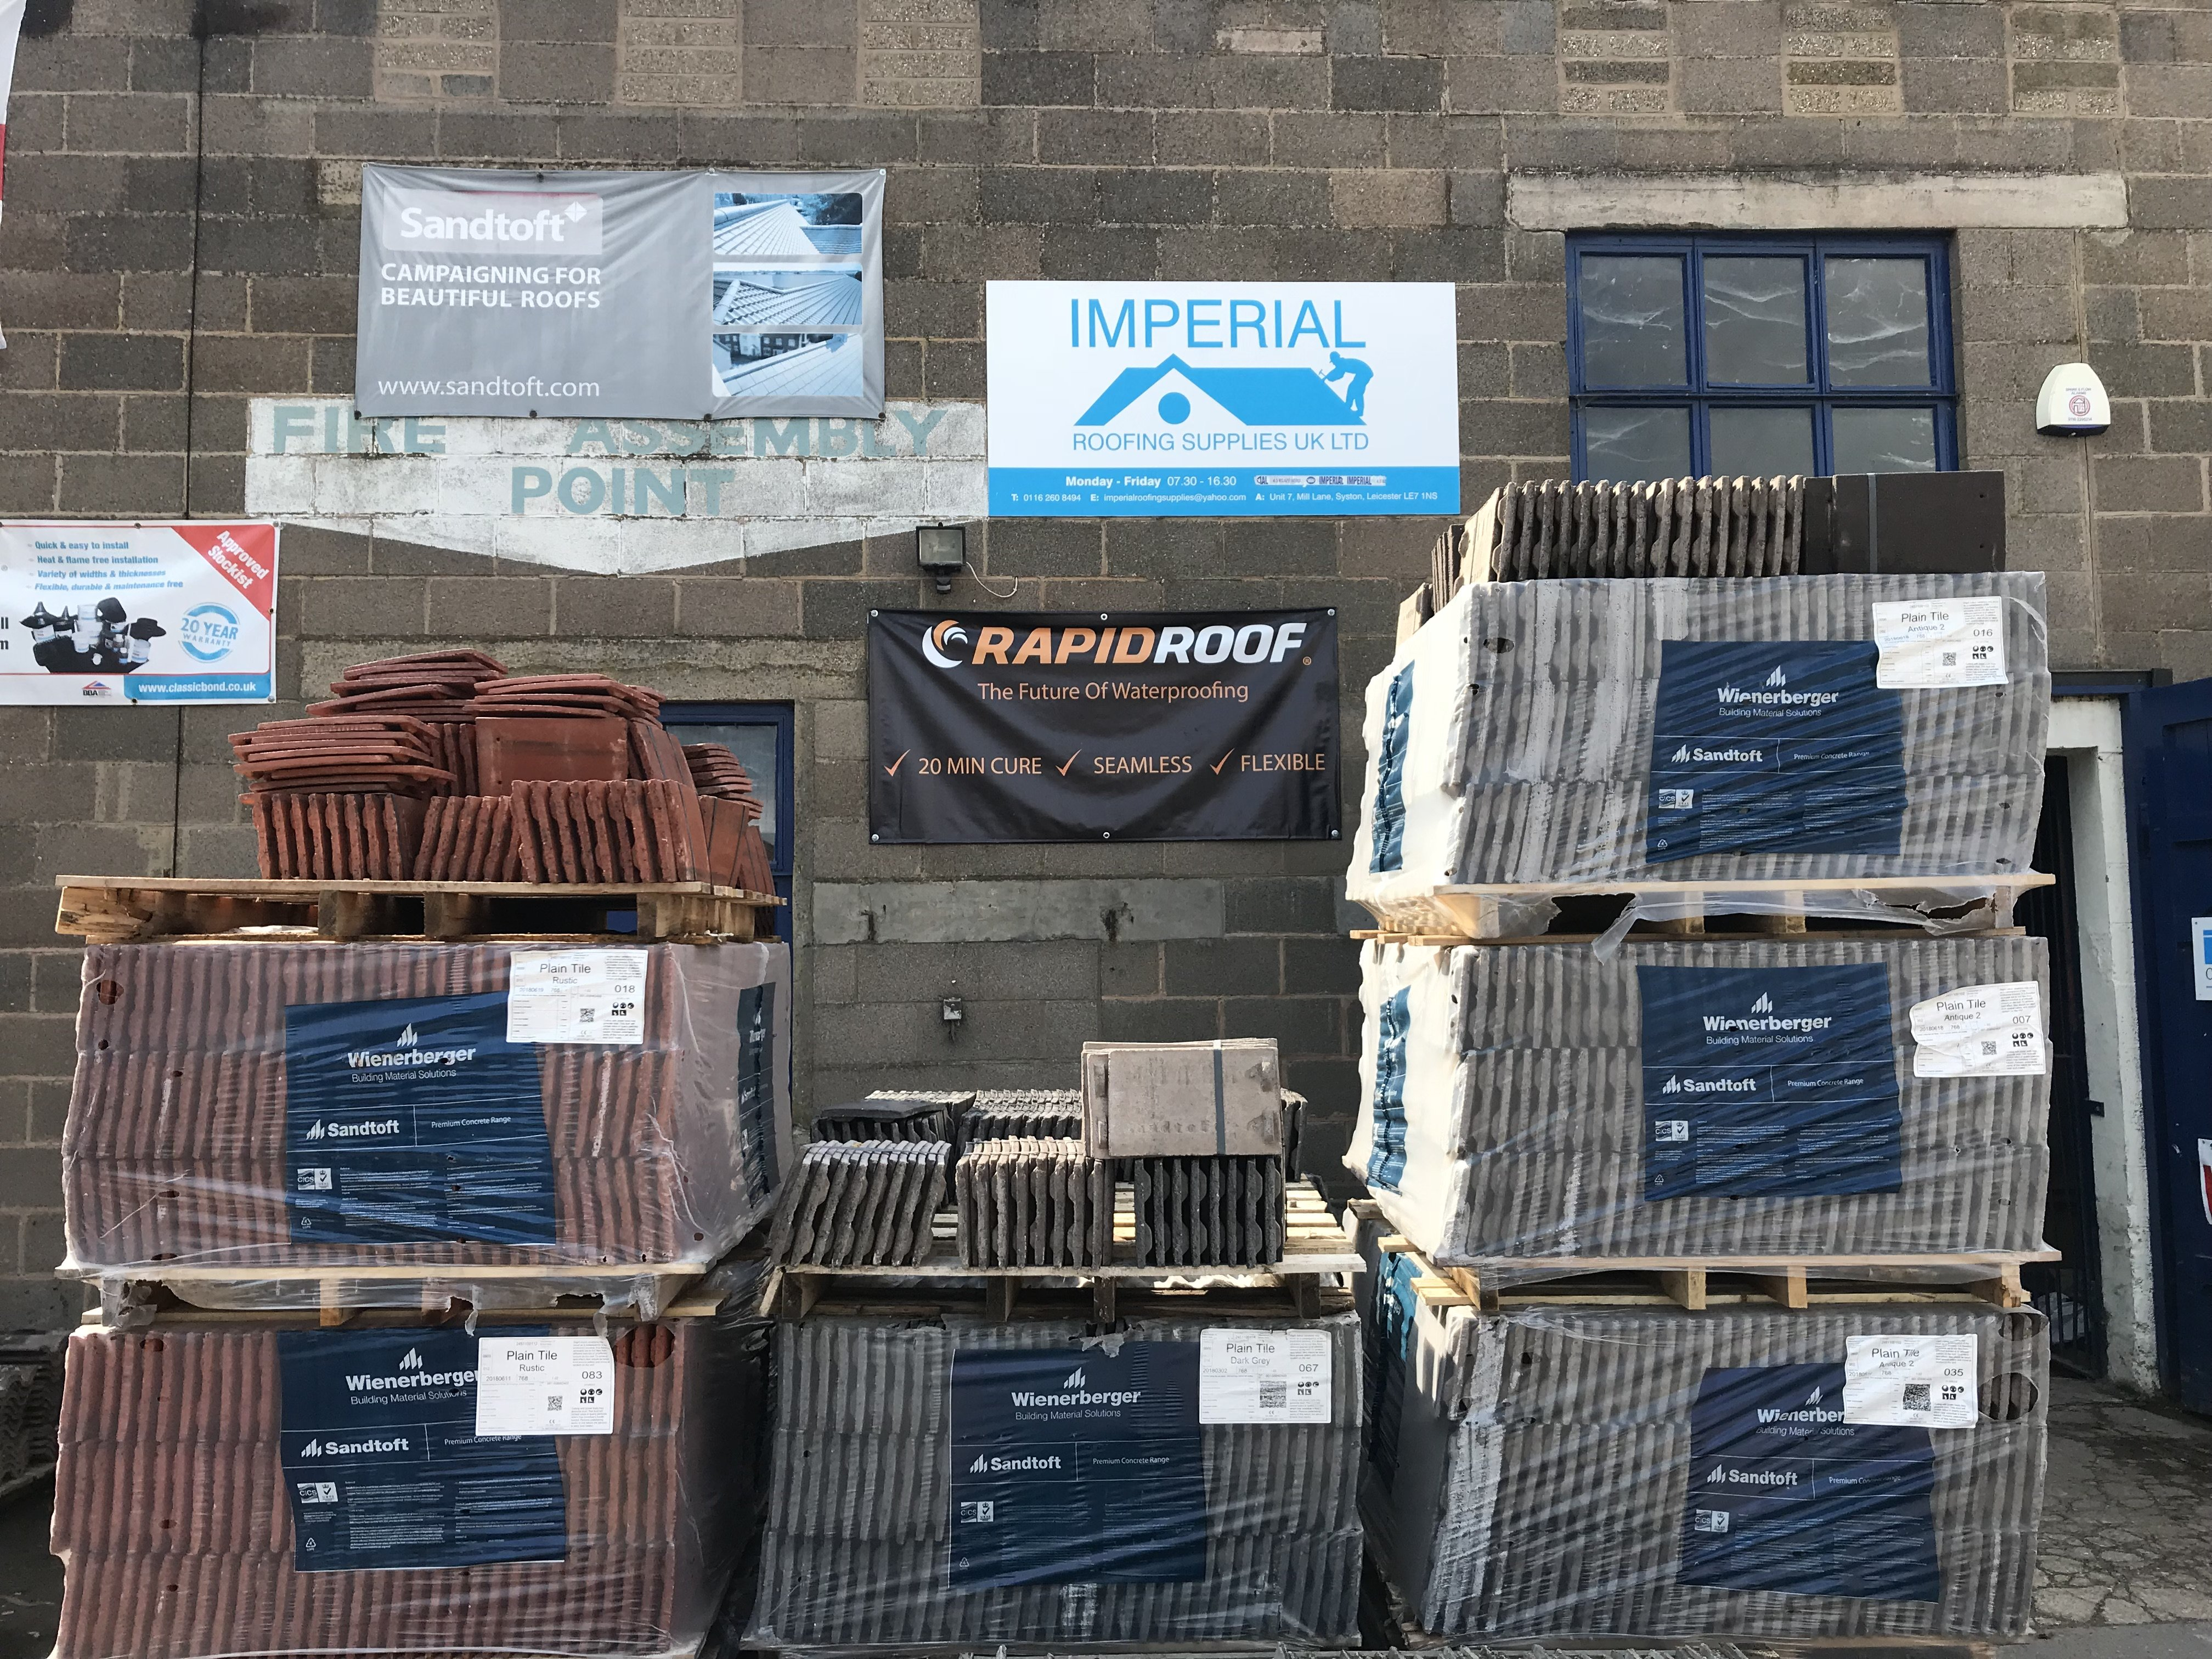 Roof Tiles And Slate Suppliers In Leicester Imperial Roofing Supplies Uk Ltd